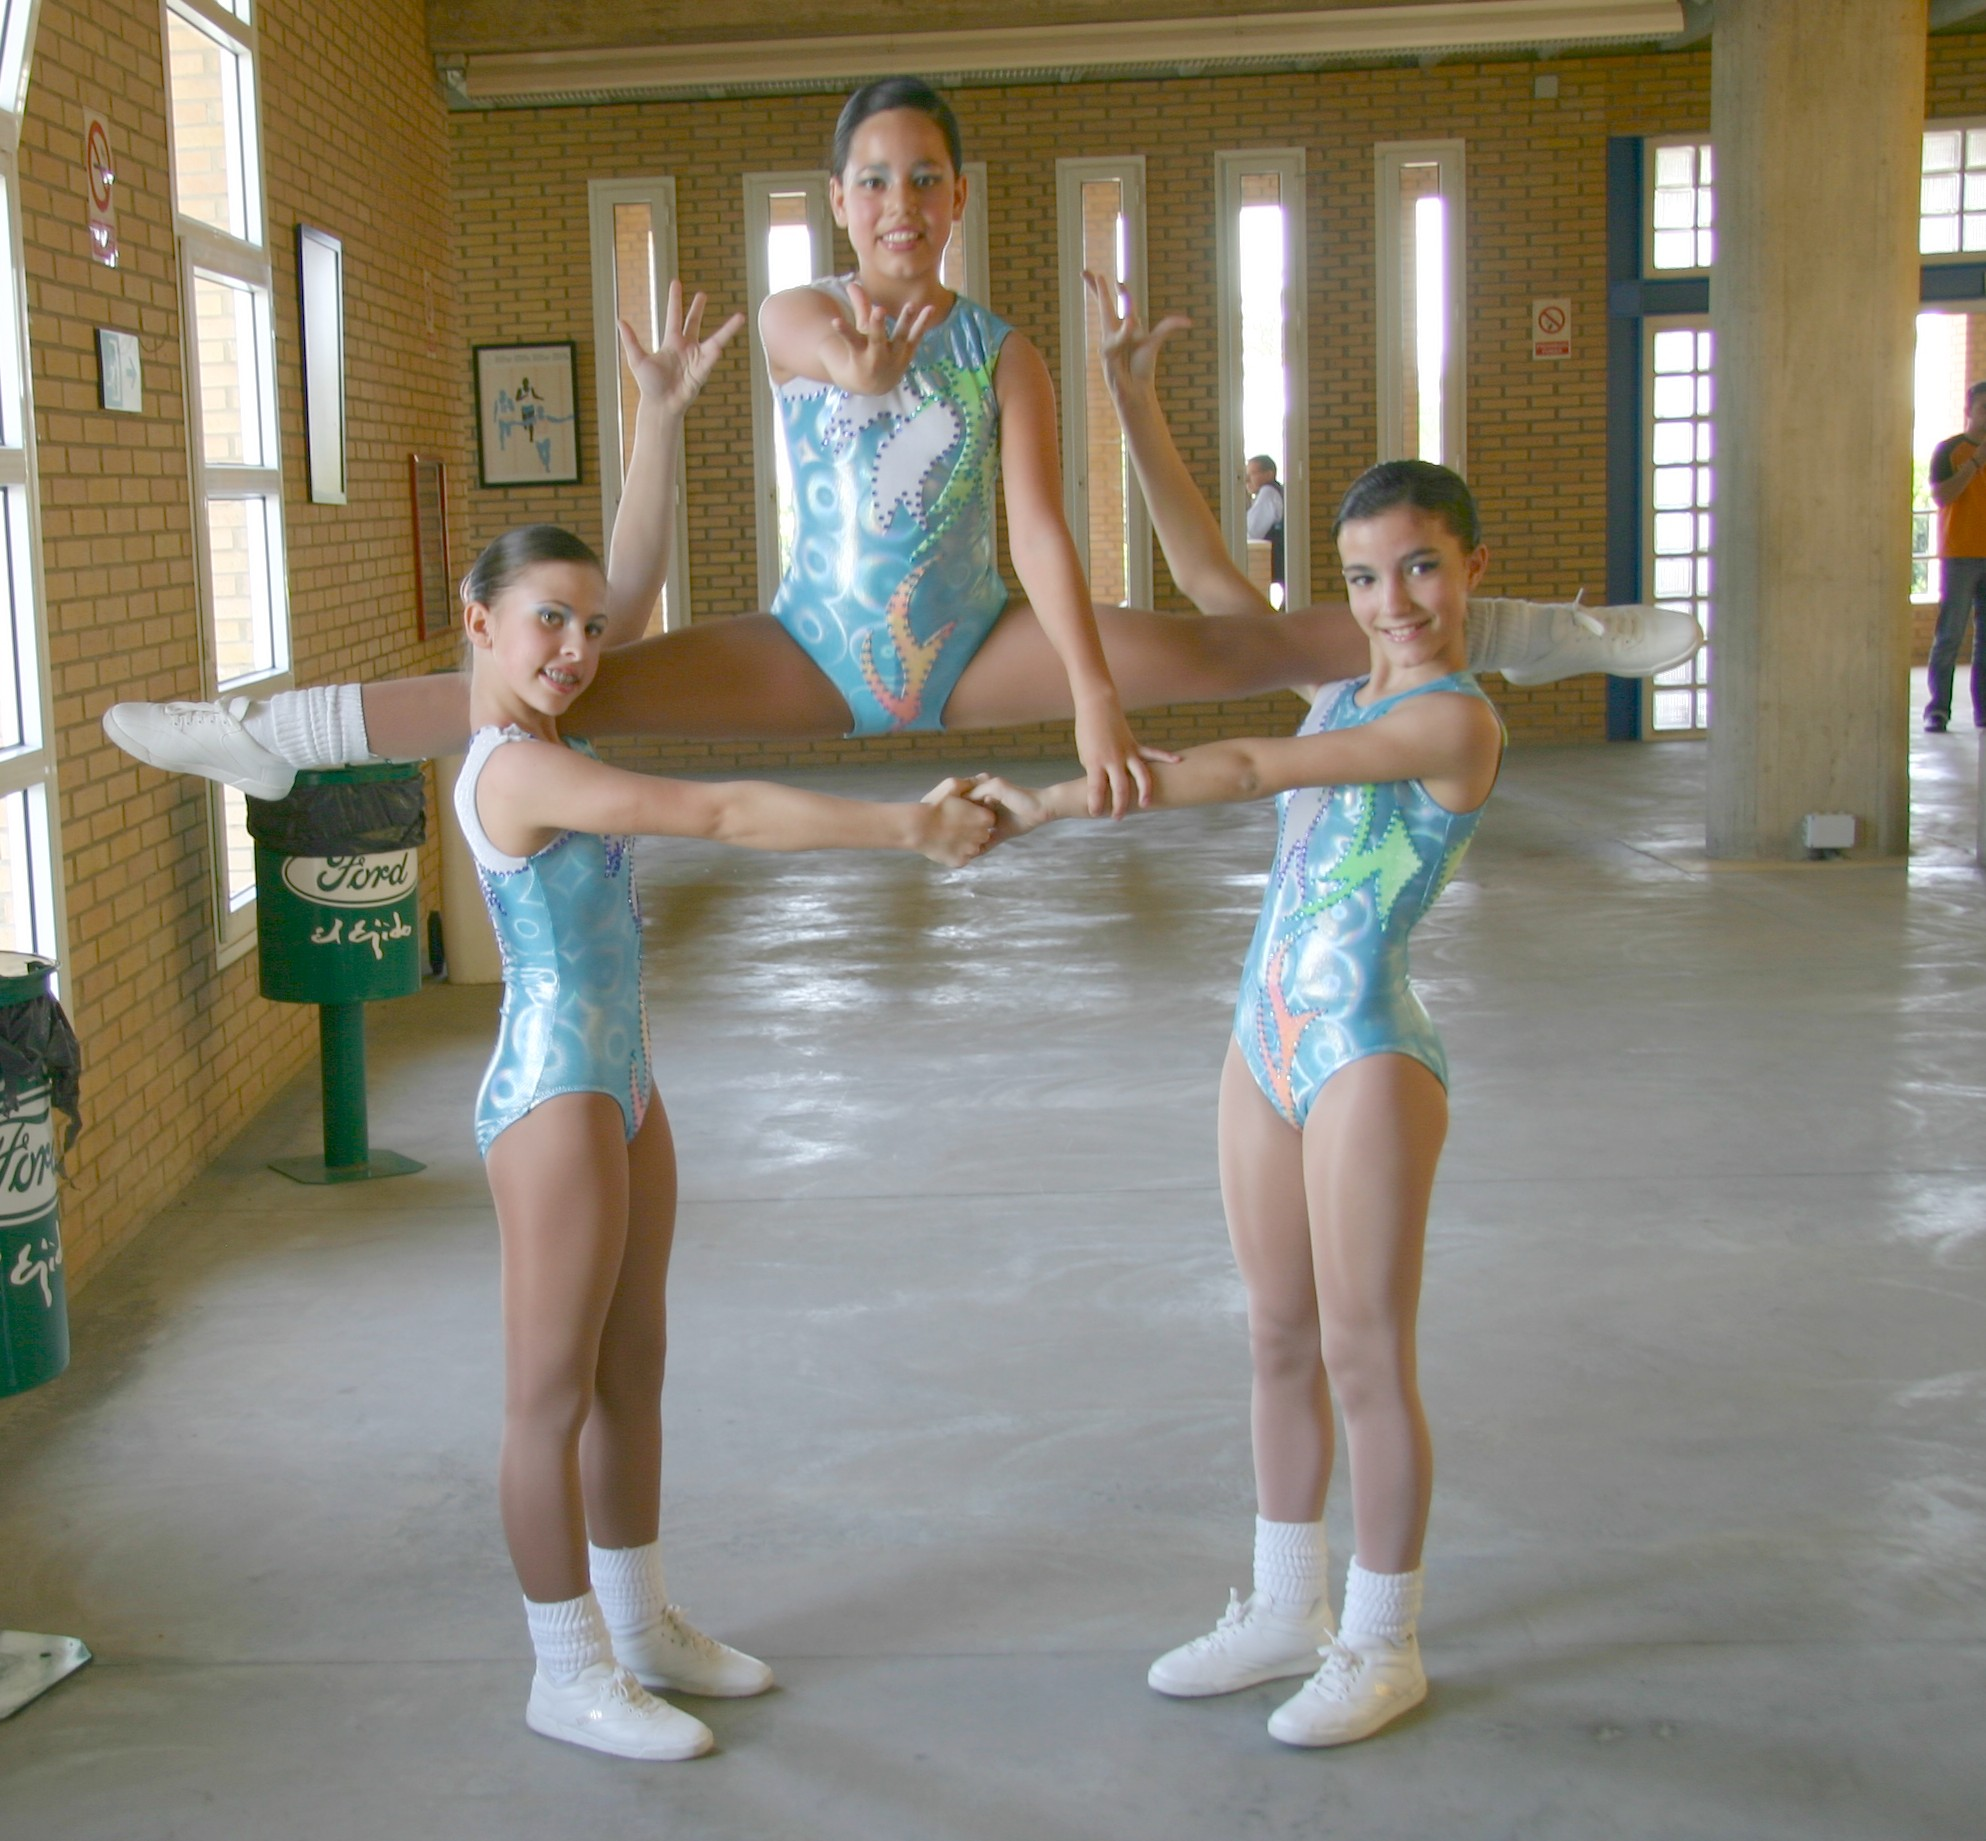 3 young girls in aerobic poses; 1 of them doing splits on their shoulders